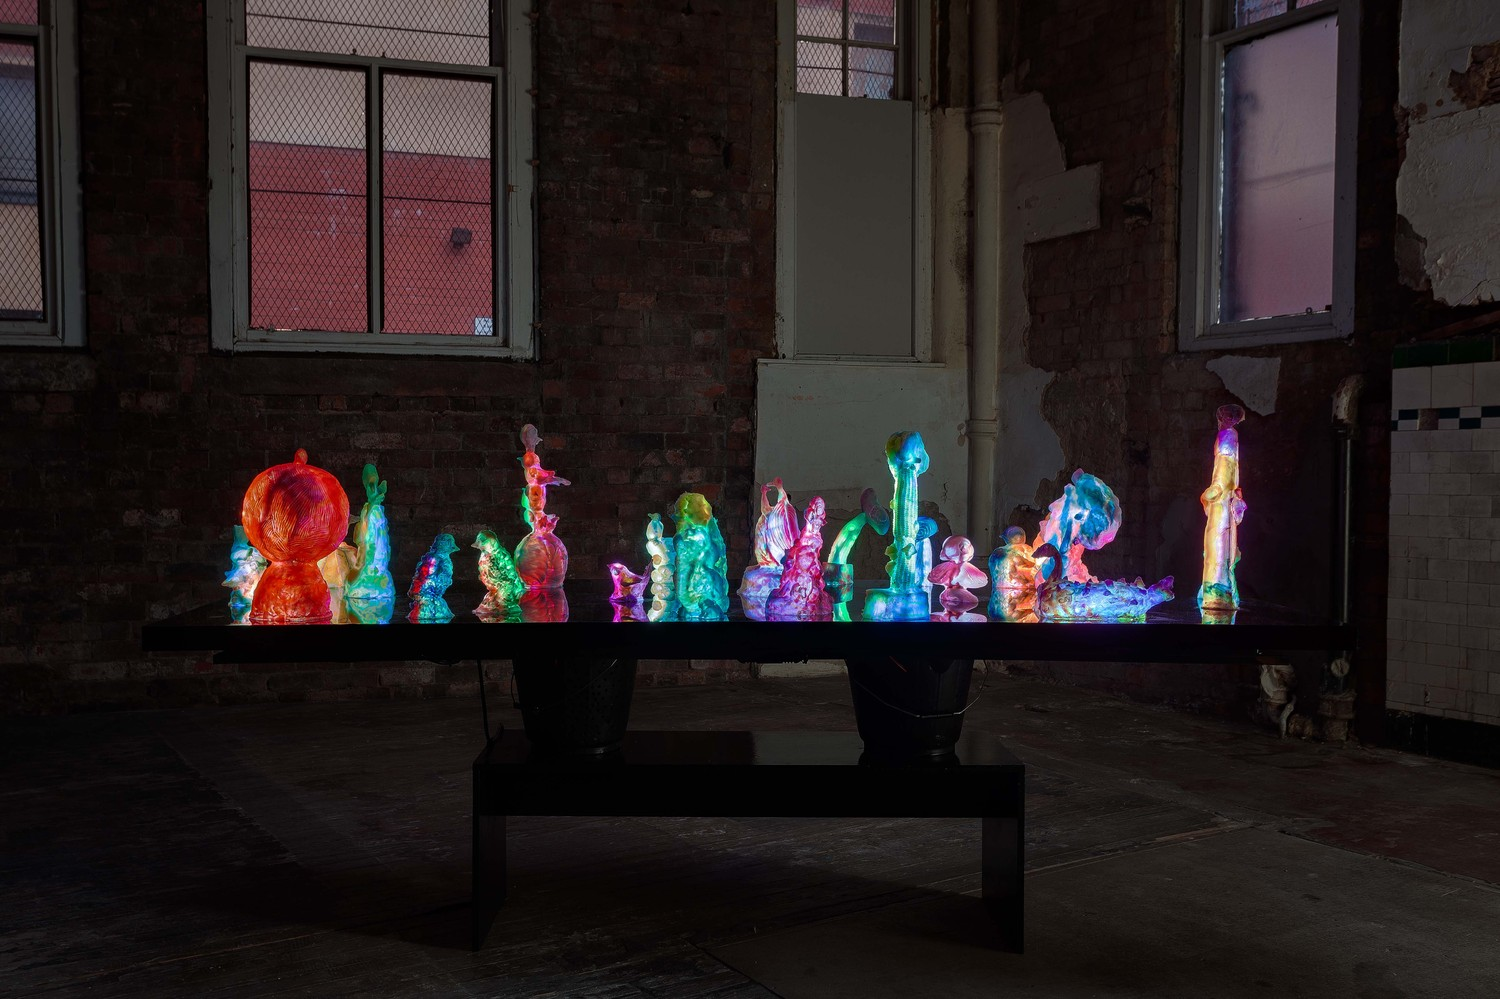 To Disturb Somnolent Birds, 2020, Perspex table, 19 resin and pigment sculpture with LED strip, WiFI controller, electronic, components, Jesmonite buckets with speakers, looped soundtrack, wooden bench, Overall dimensions: 120 x 240 x 93 cm